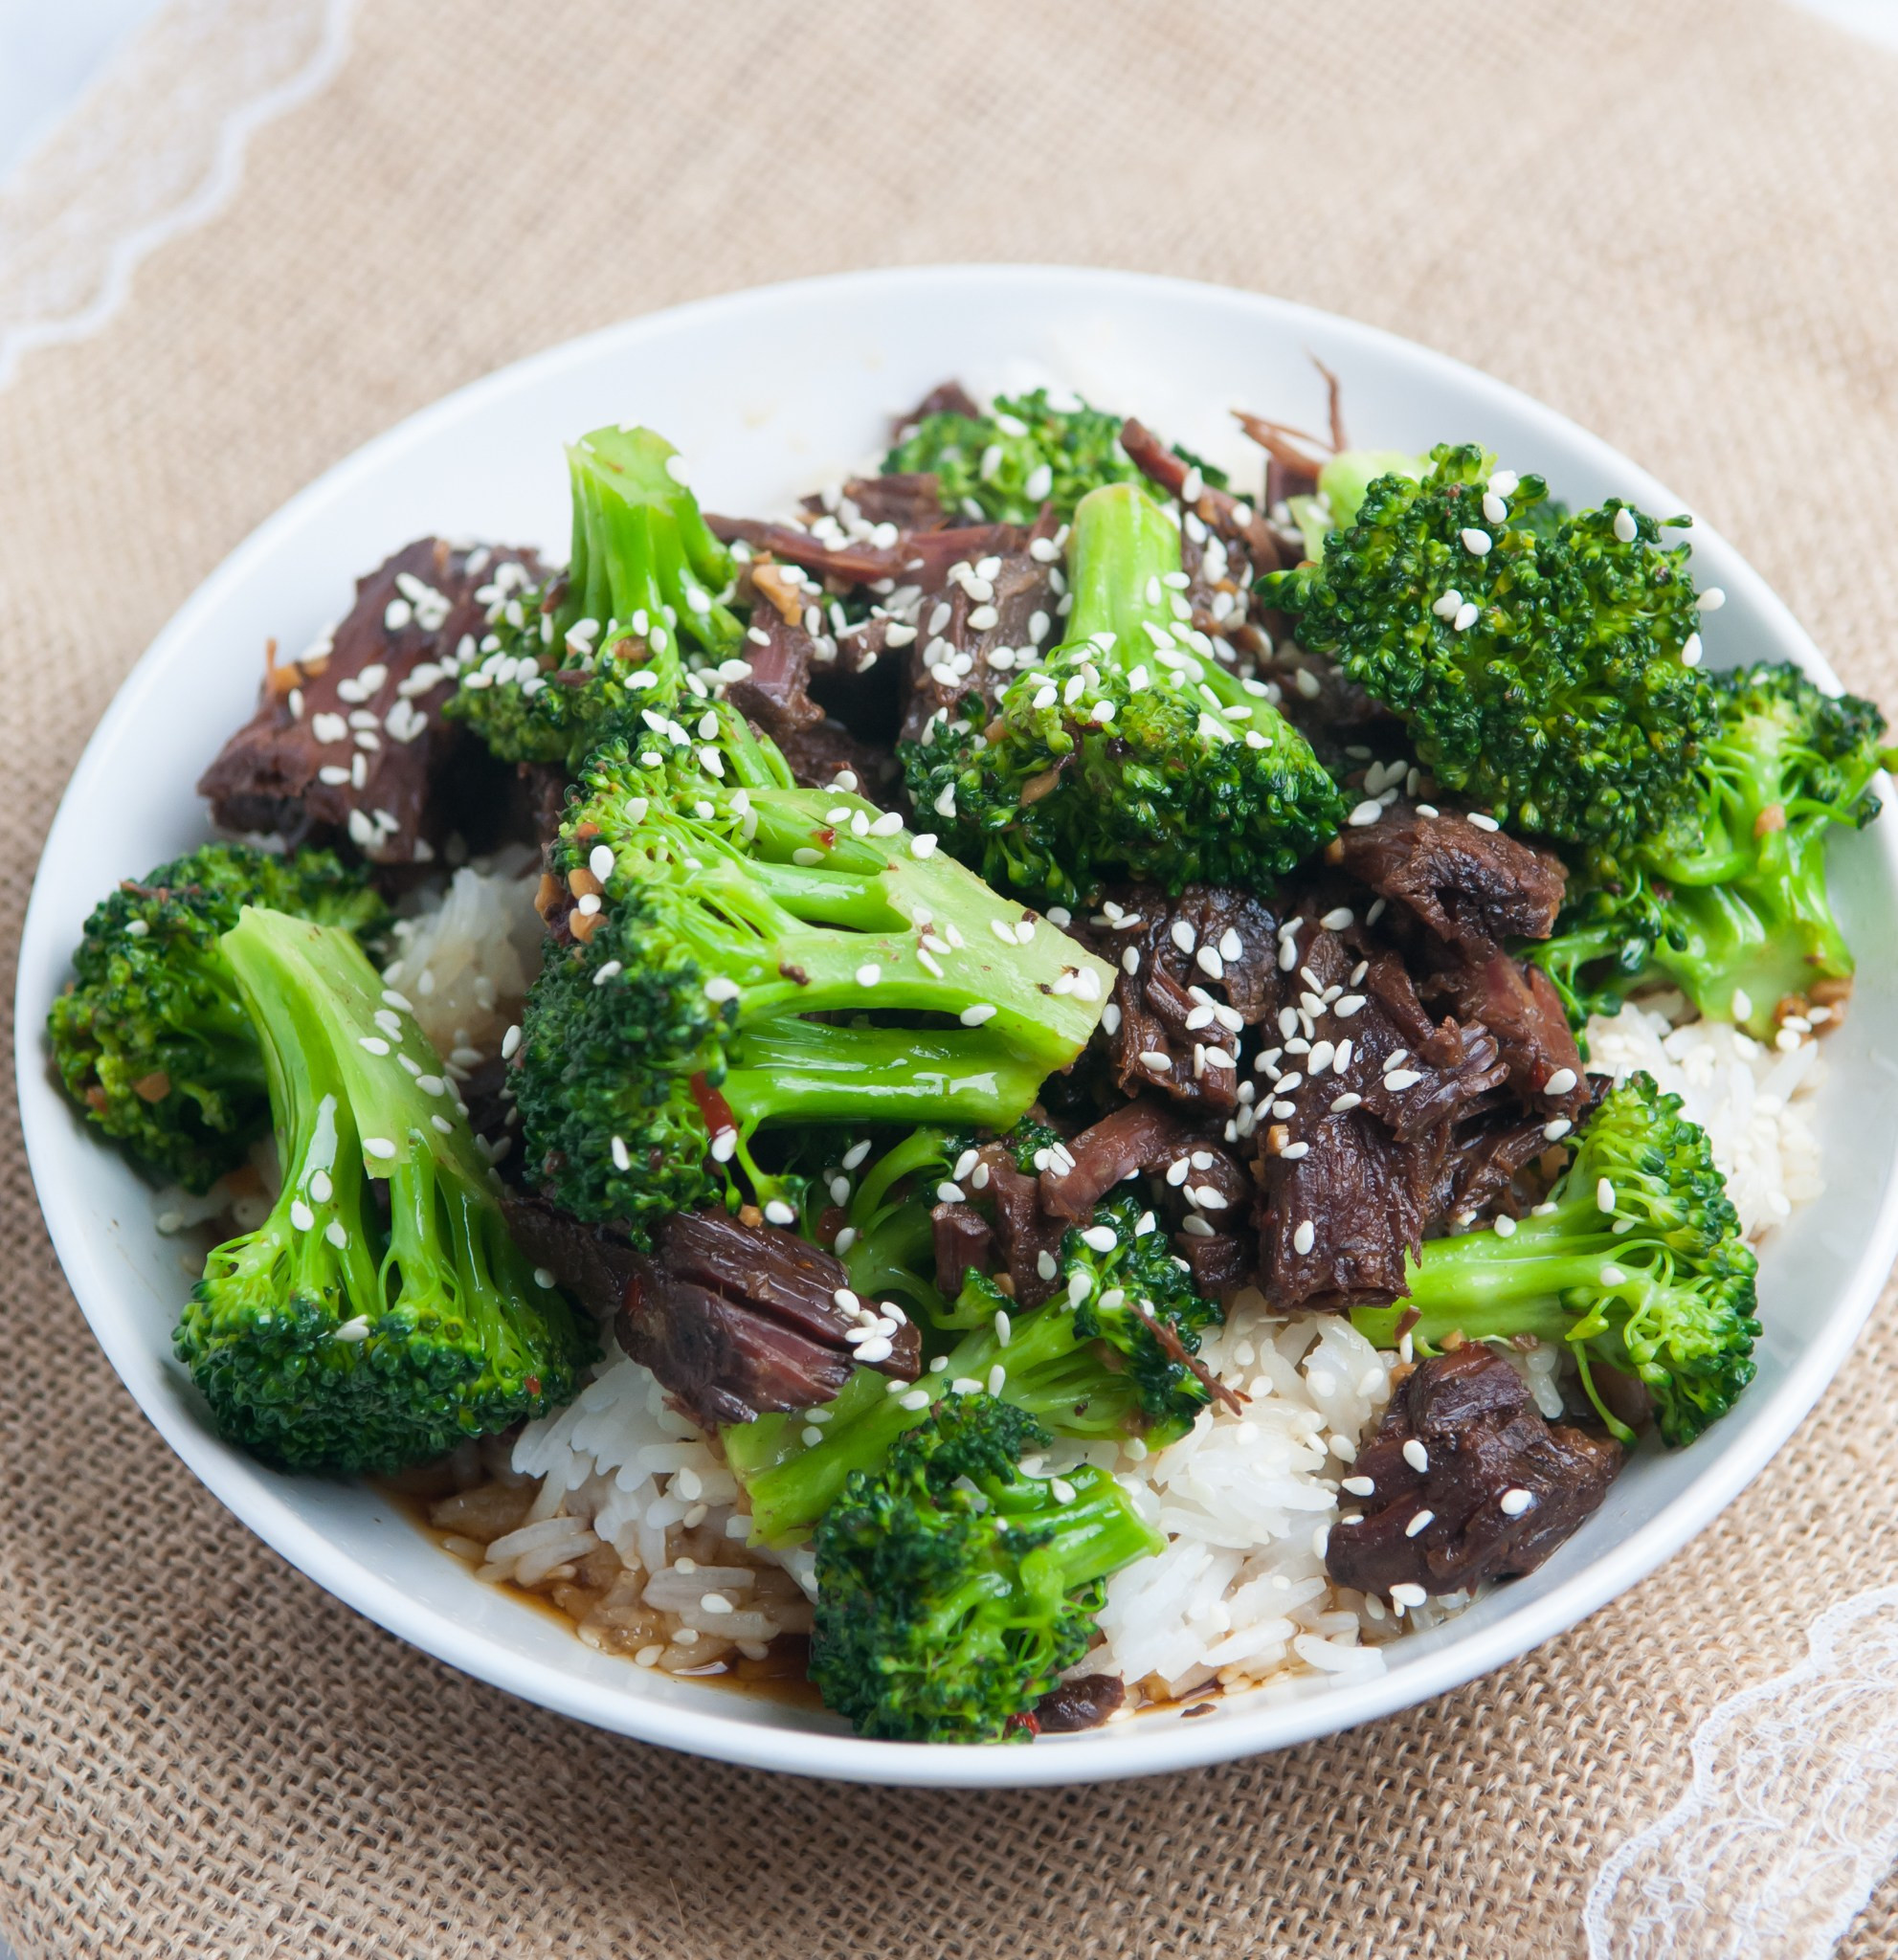 Slow Cooker Beef And Broccoli  Slow Cooker Beef and Broccoli Tabitha Talks Food